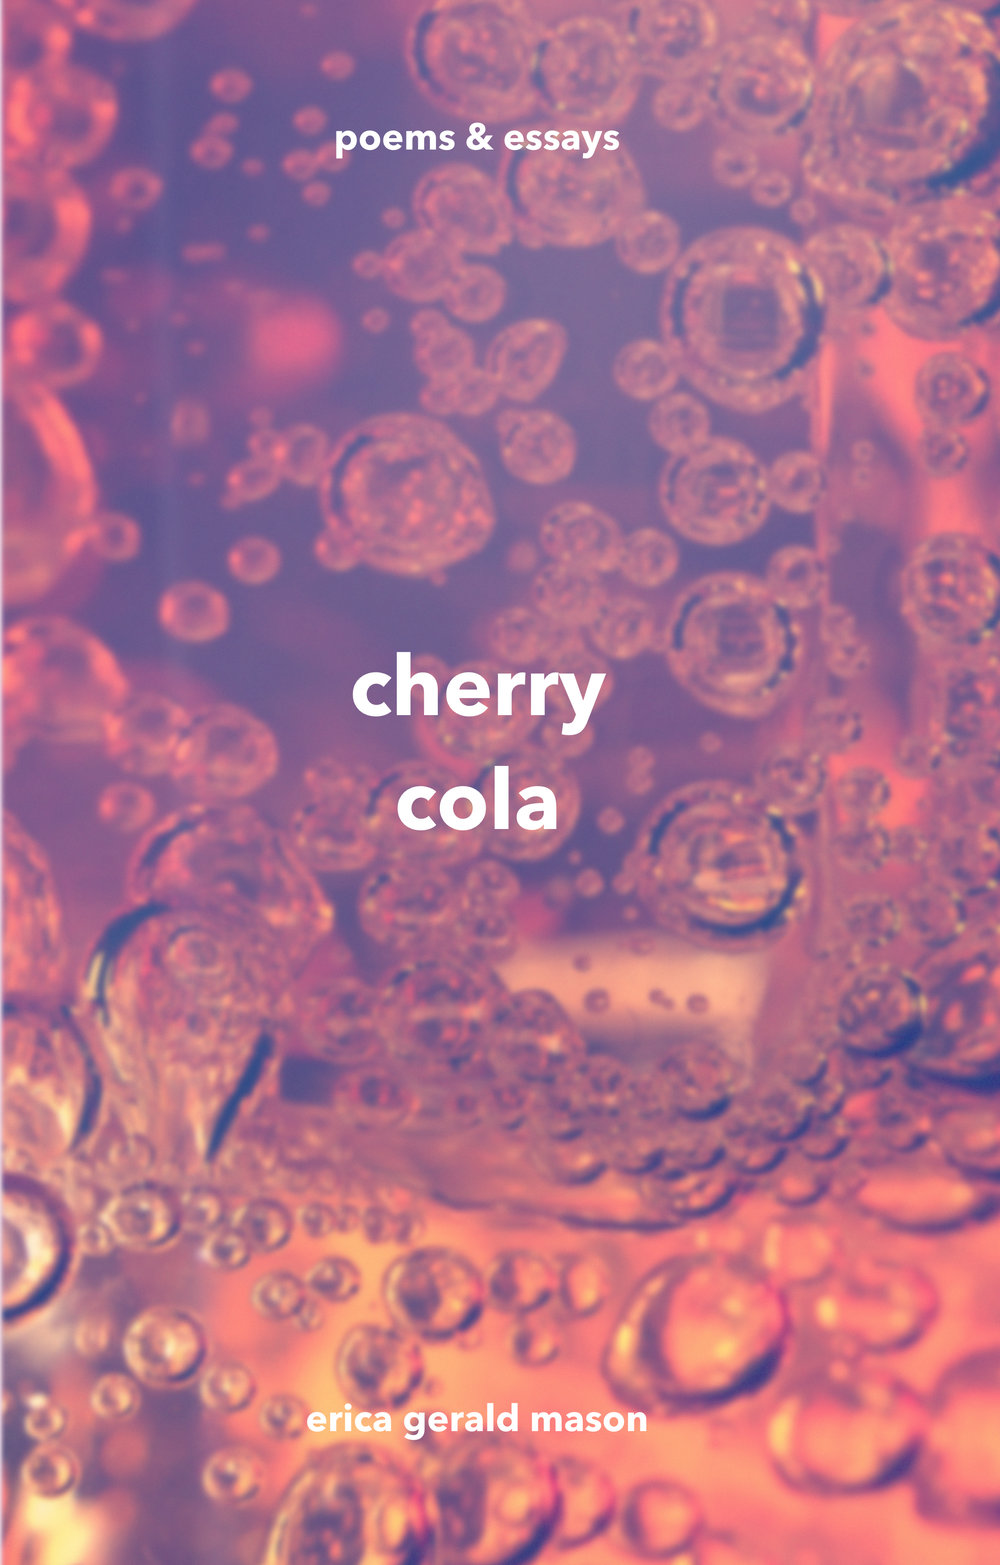 cherry cola: poems & essays